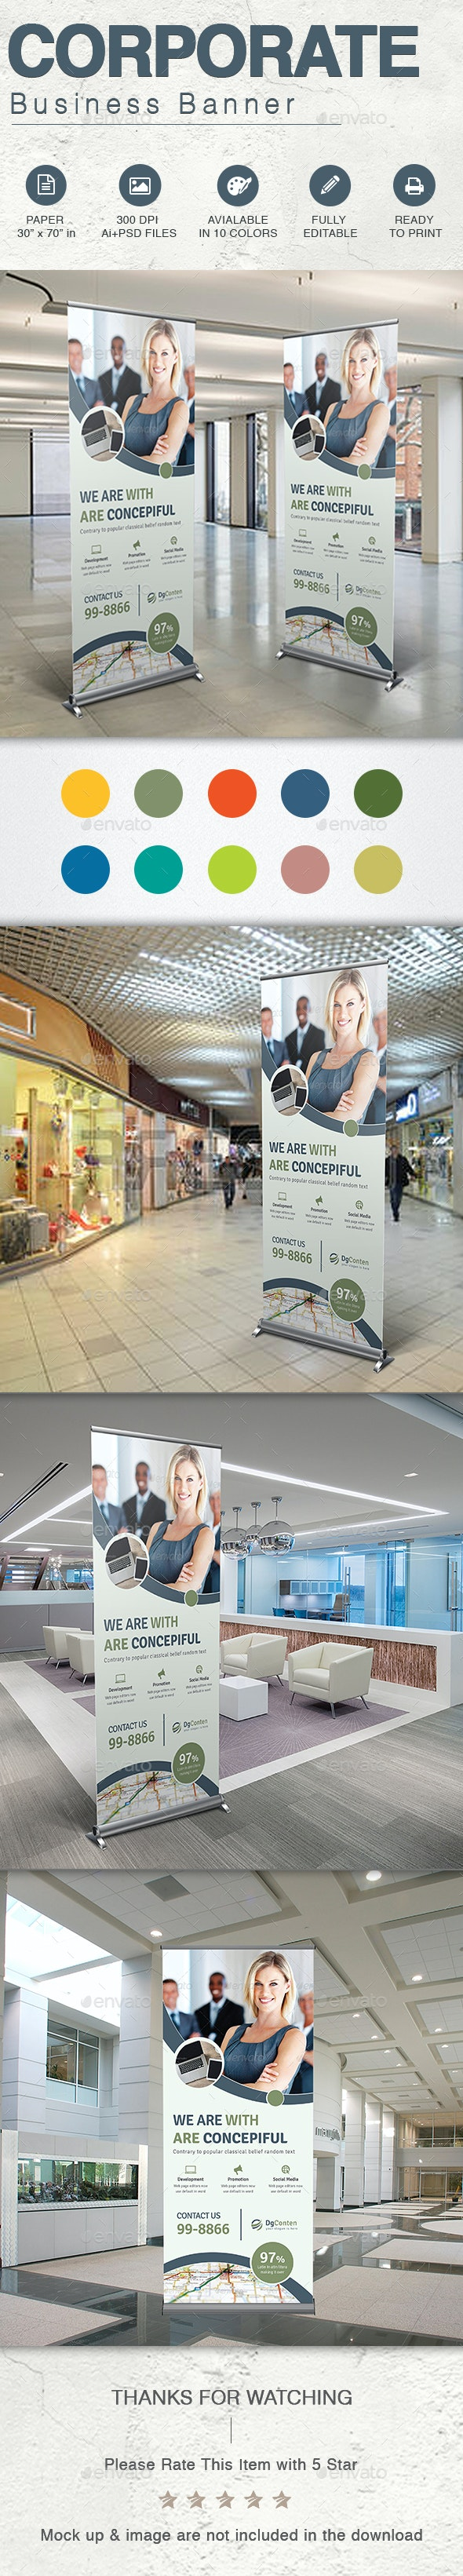 Corporate Business Banner - Signage Print Templates